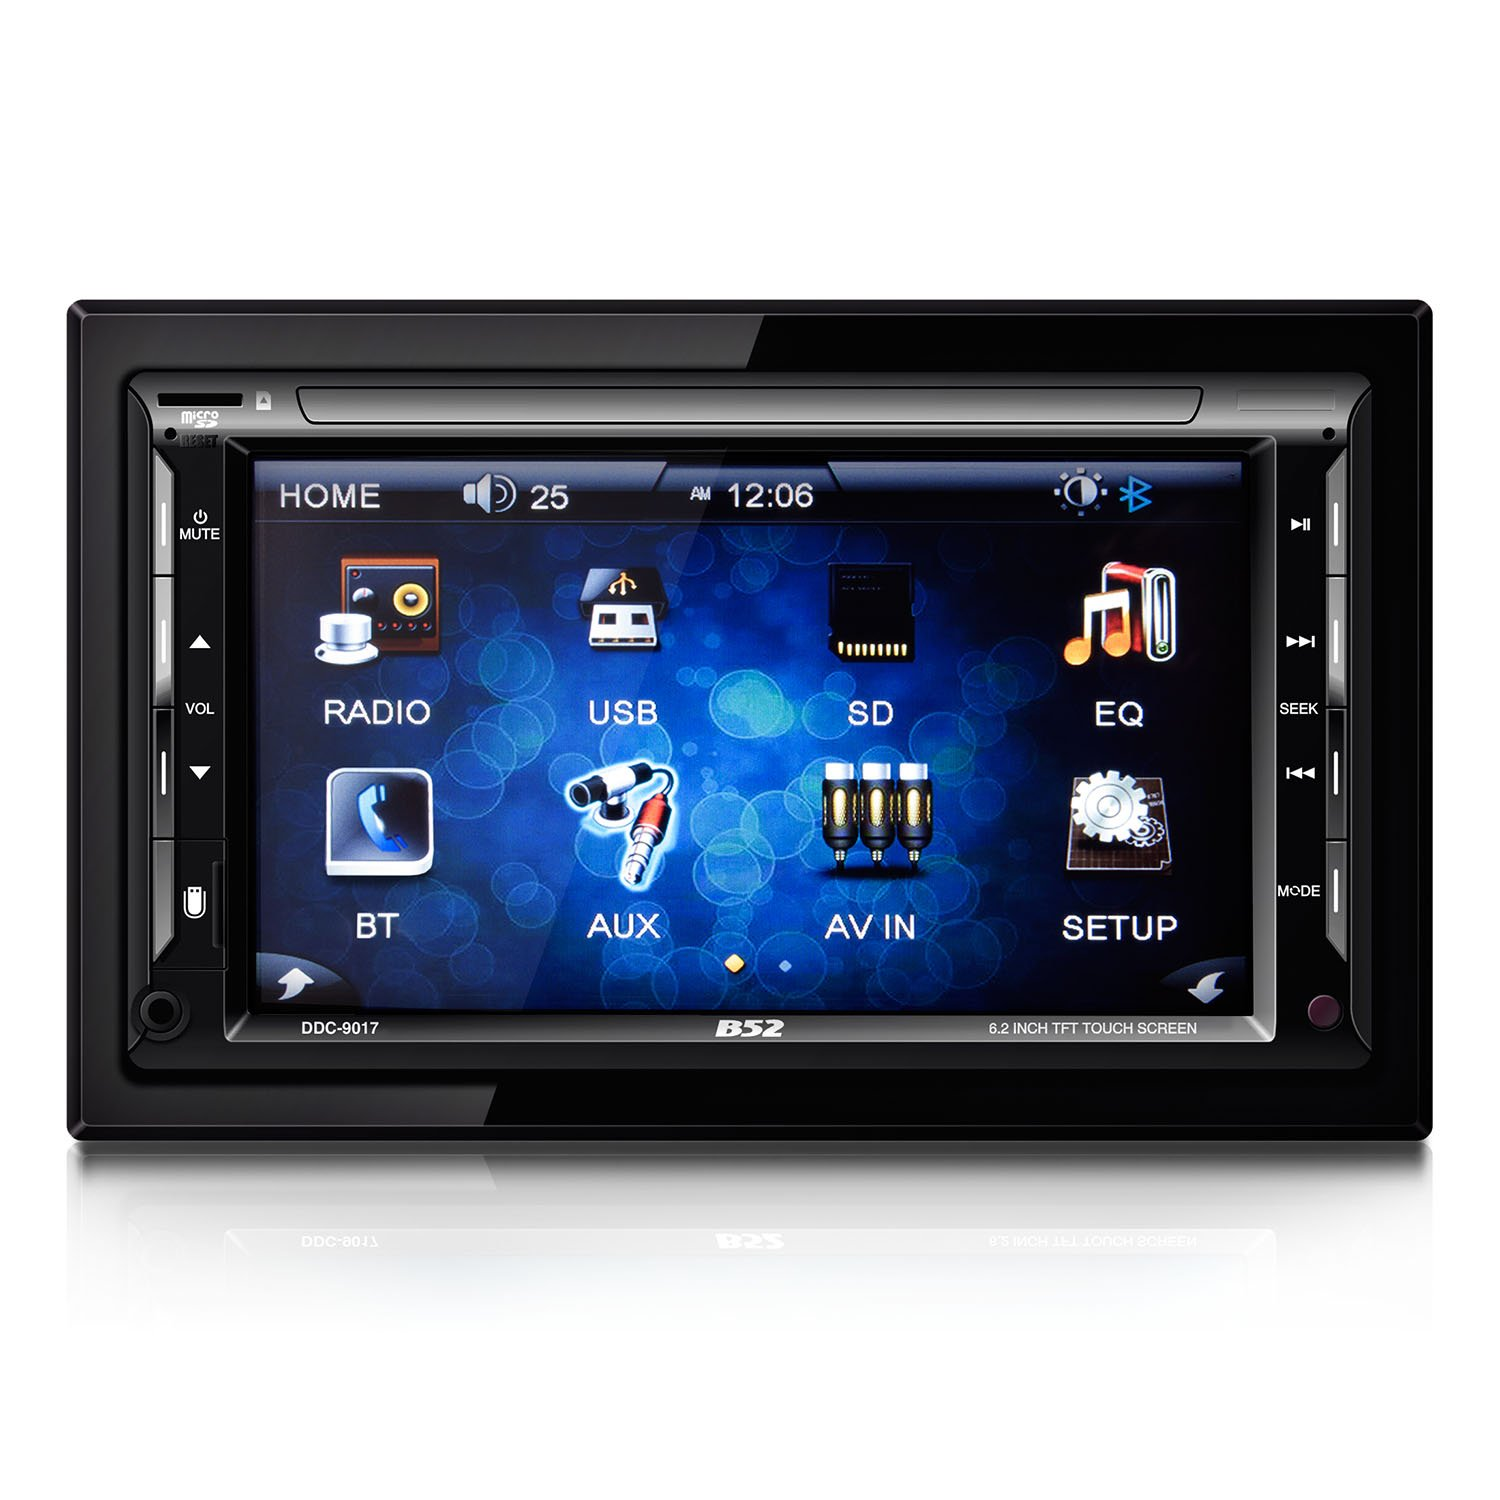 B52CarAudio DDC-9017 In-Dash DVD Receiver with 6.2'' TFT Touchscreen Display, Bluetooth Connectivity and SD/USB Receiver